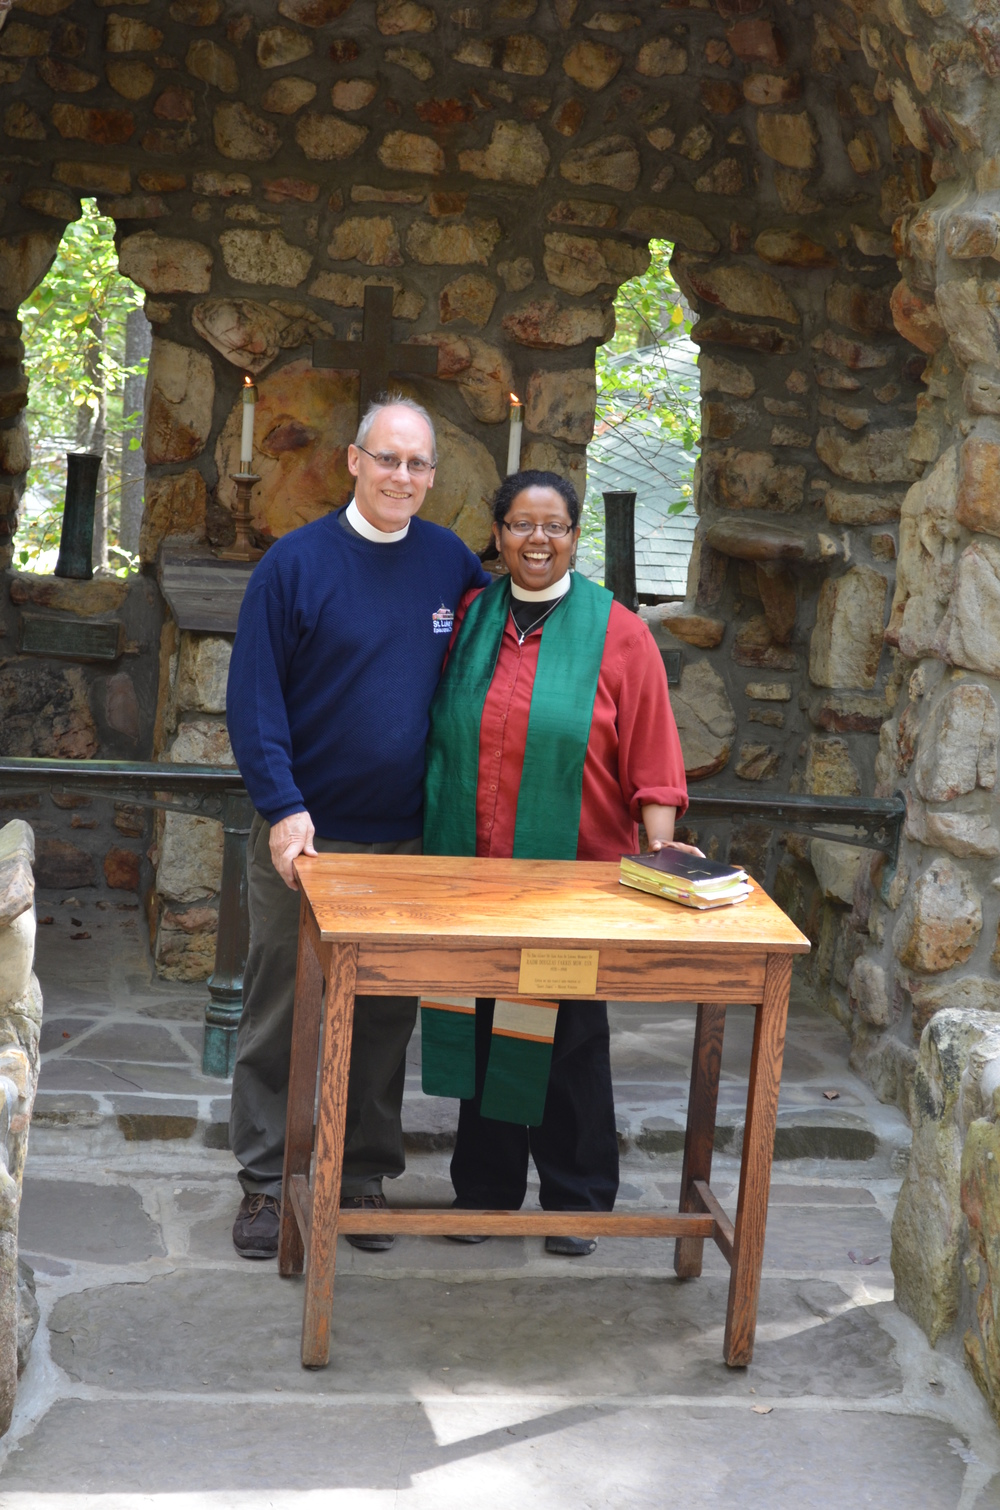 Tuck Bowerfind and Ketlen Solak at Cathedral Shrine of the Transfiguration, Shrine Mont, Orkney Springs, VA